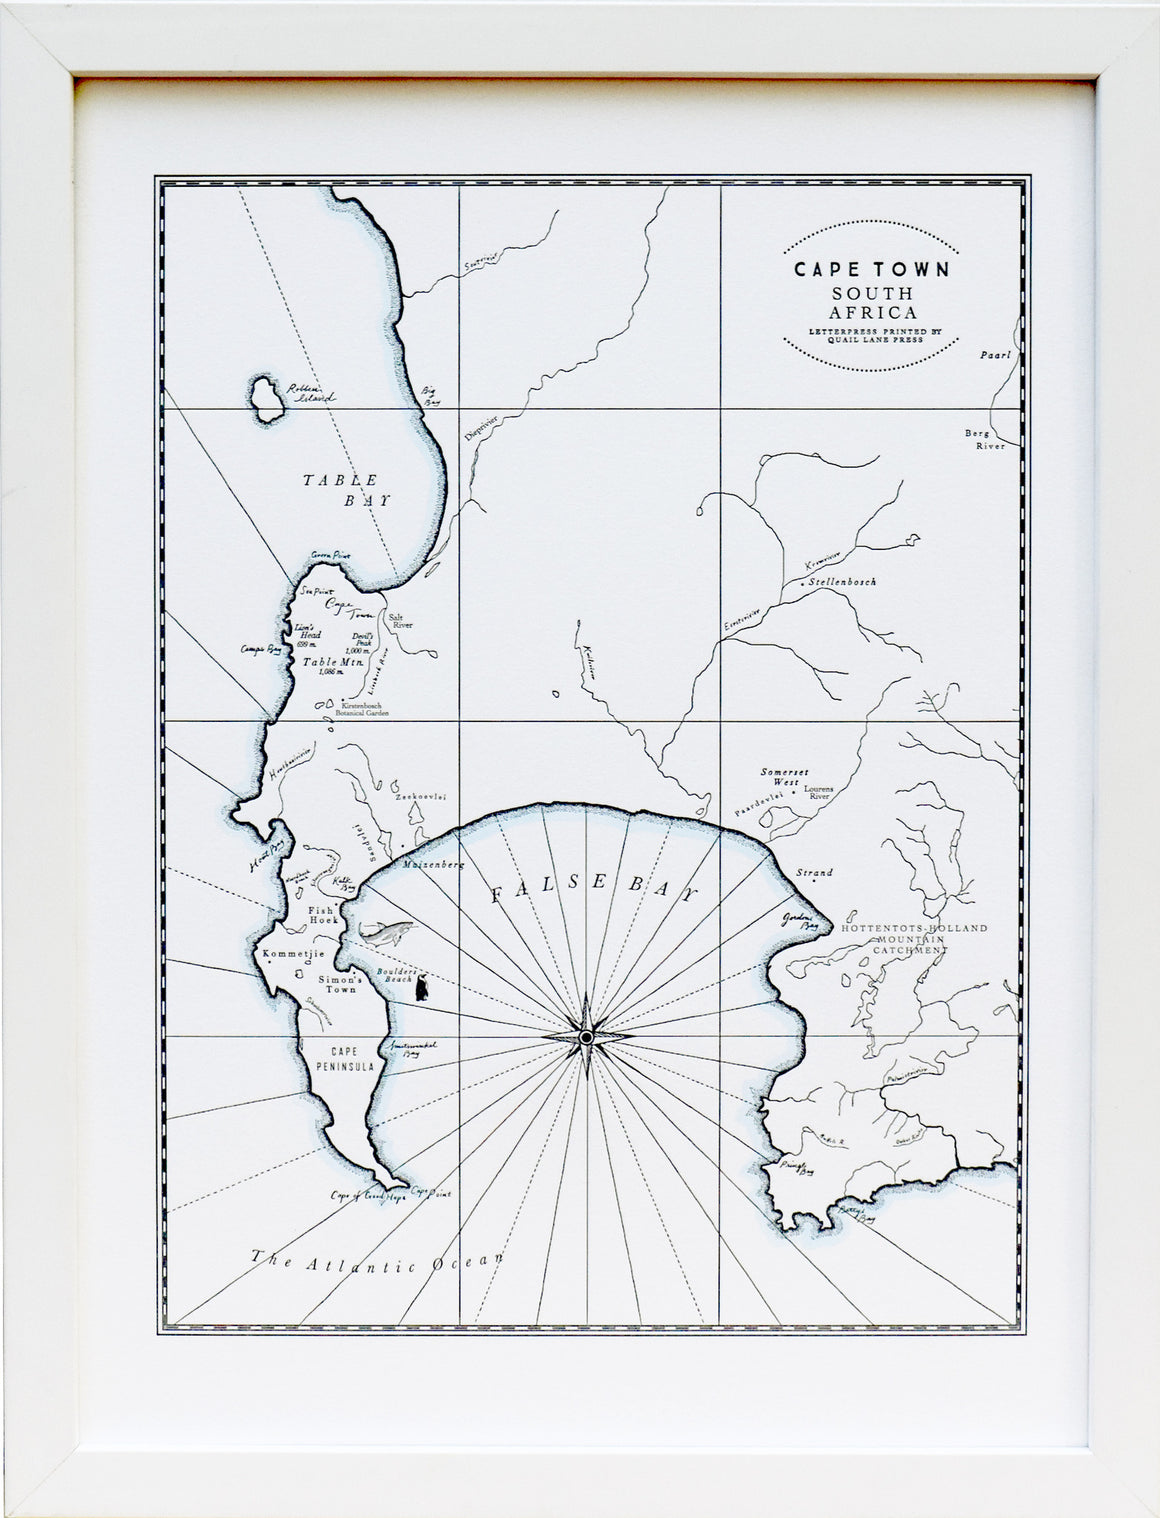 Cape Town, South Africa Letterpress Map